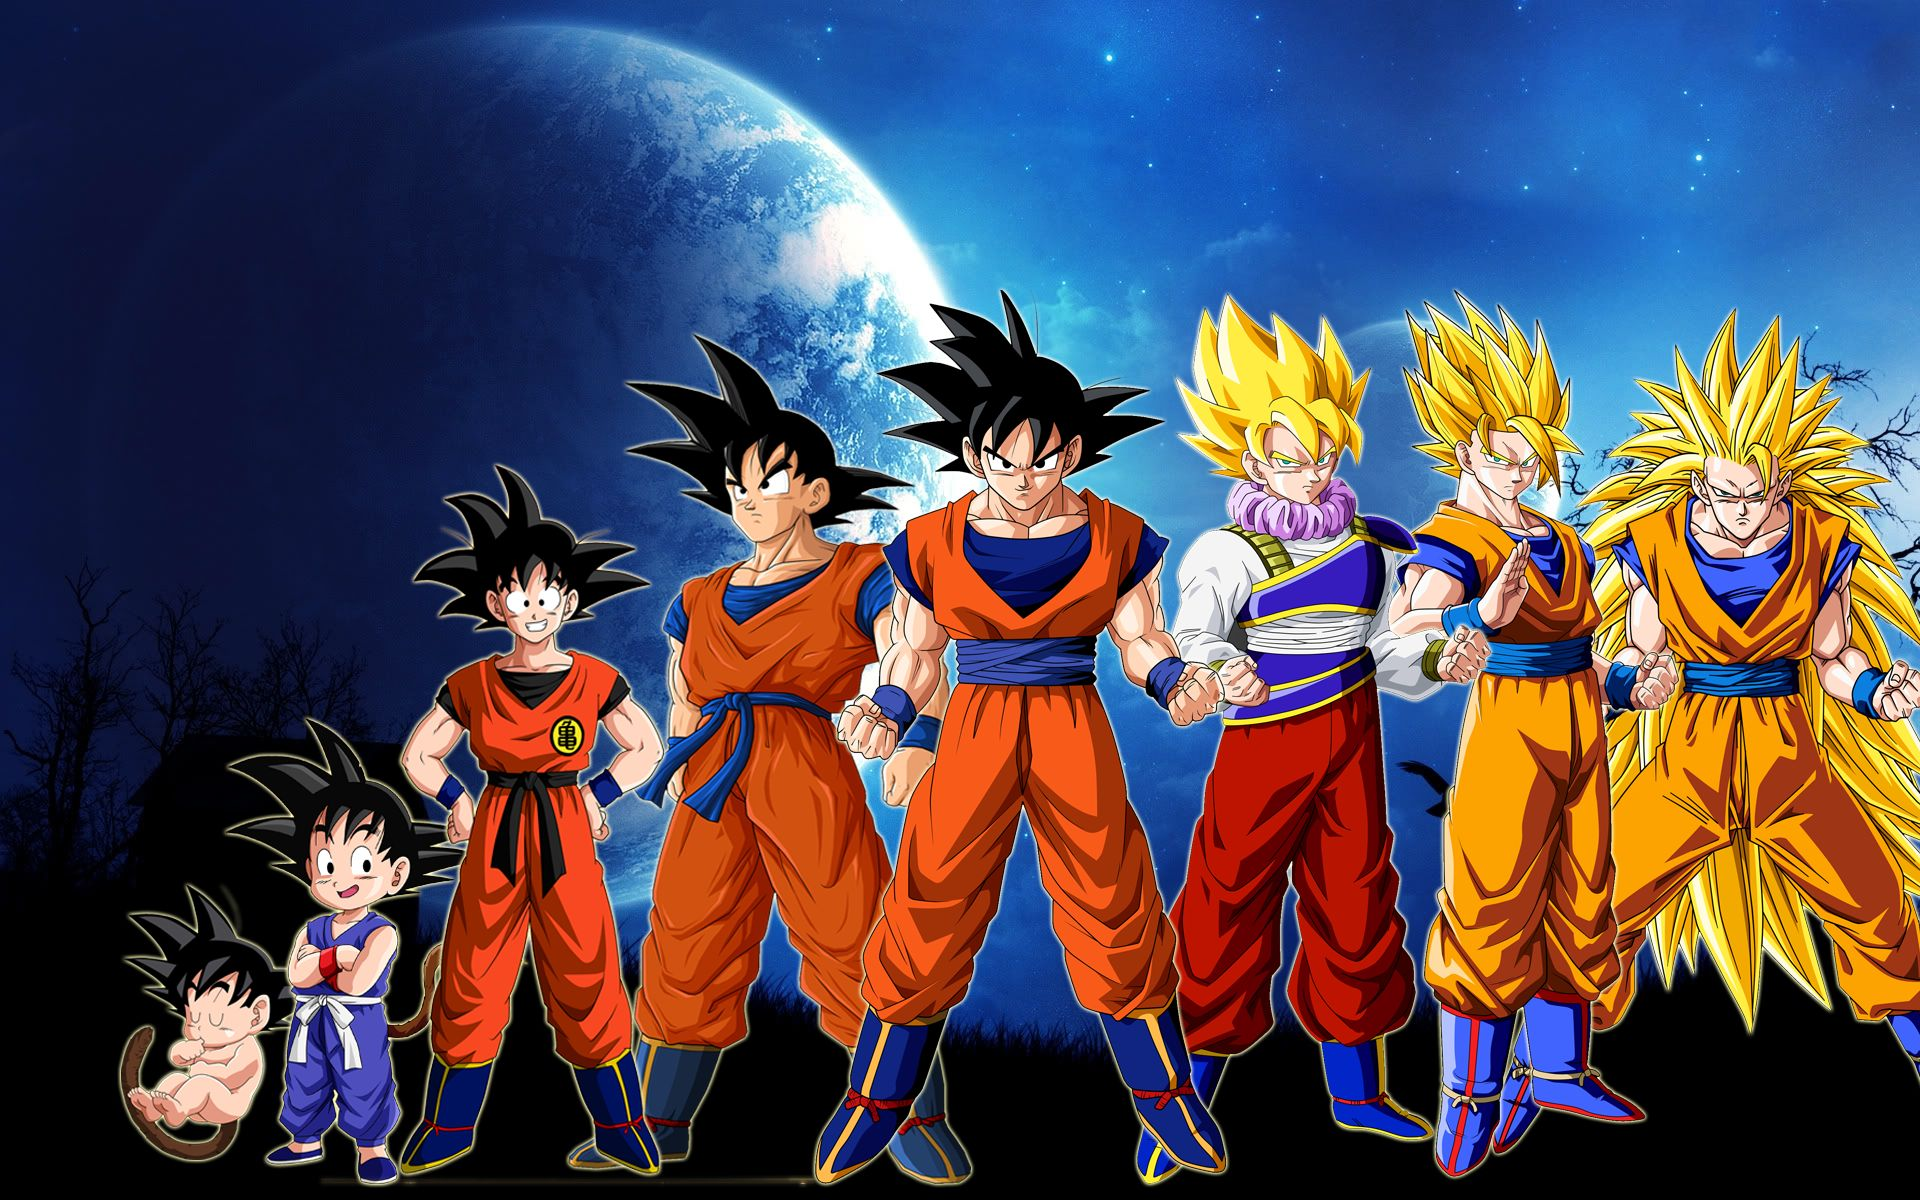 essay on dragon ball z Watch high quality episodes of all popular anime series, updated every hour with the best english subtitles right here on animeshowtv.